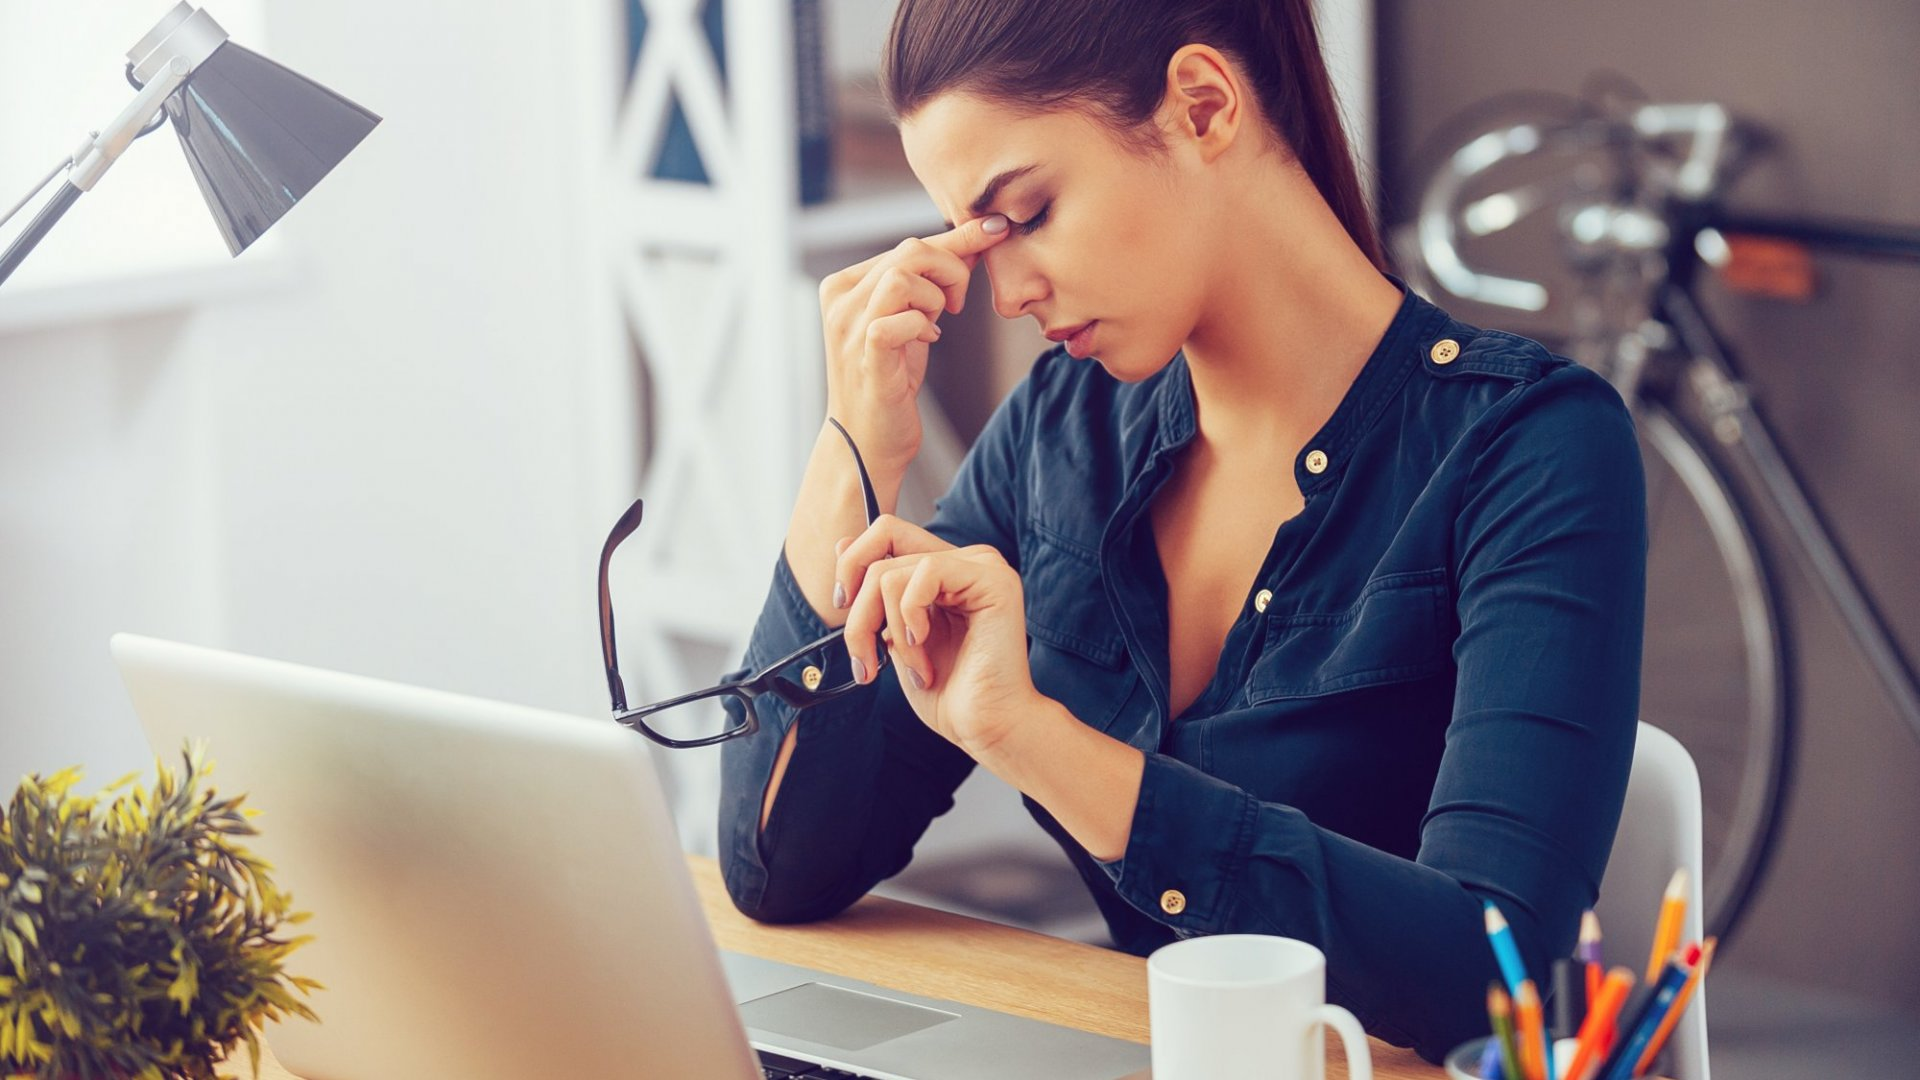 Being in 'Work Mode' All Day Long Is Hurting You. Here's How to Detach